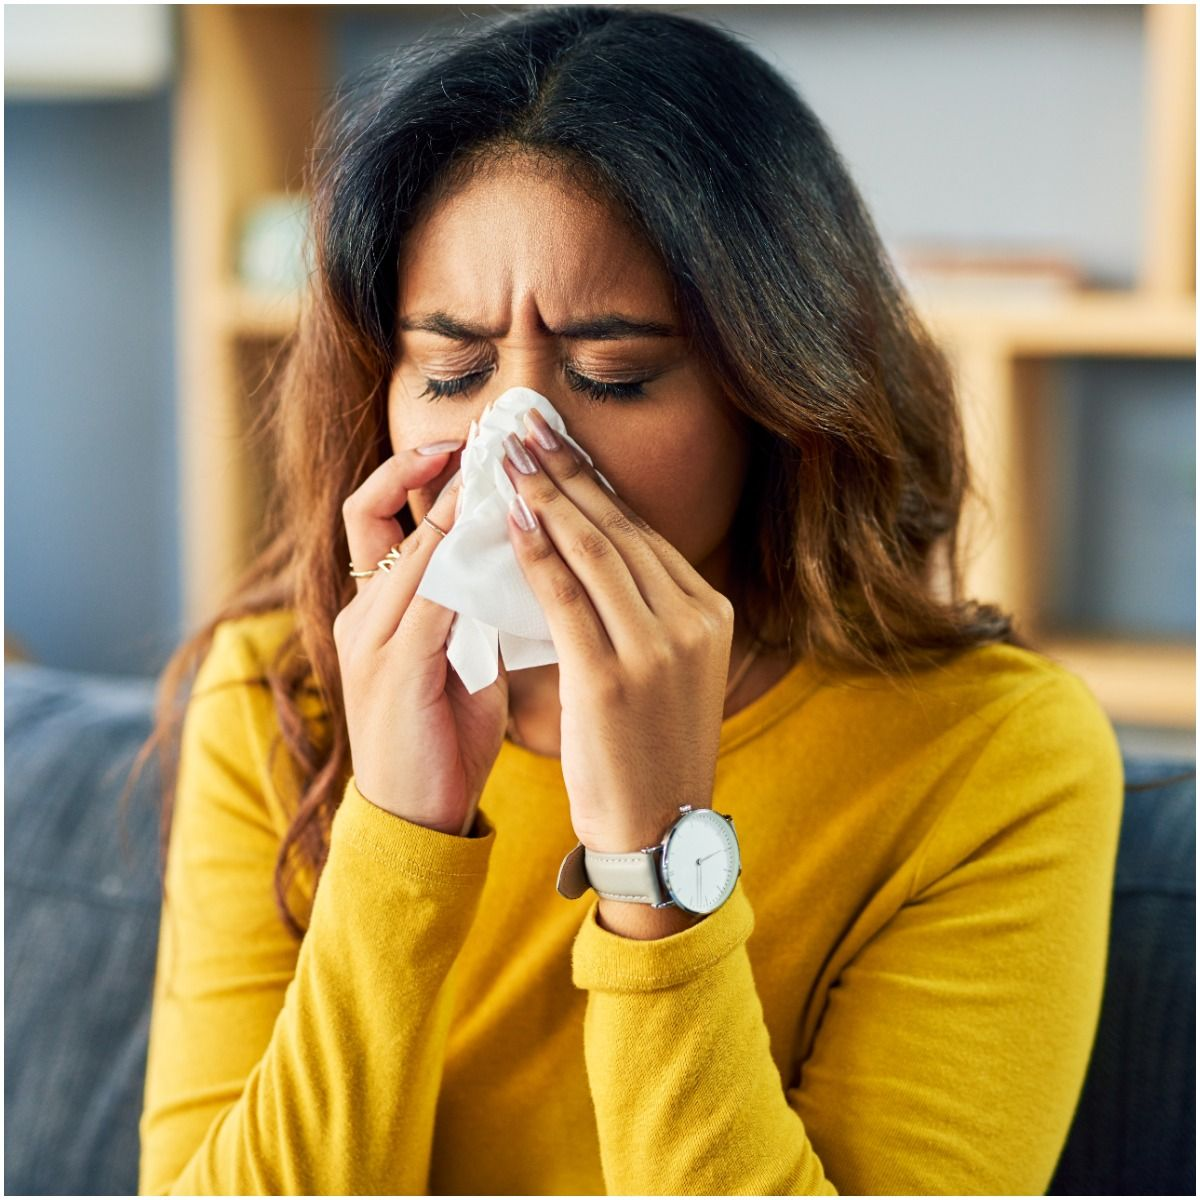 Spiritual Meaning Of The Common Cold